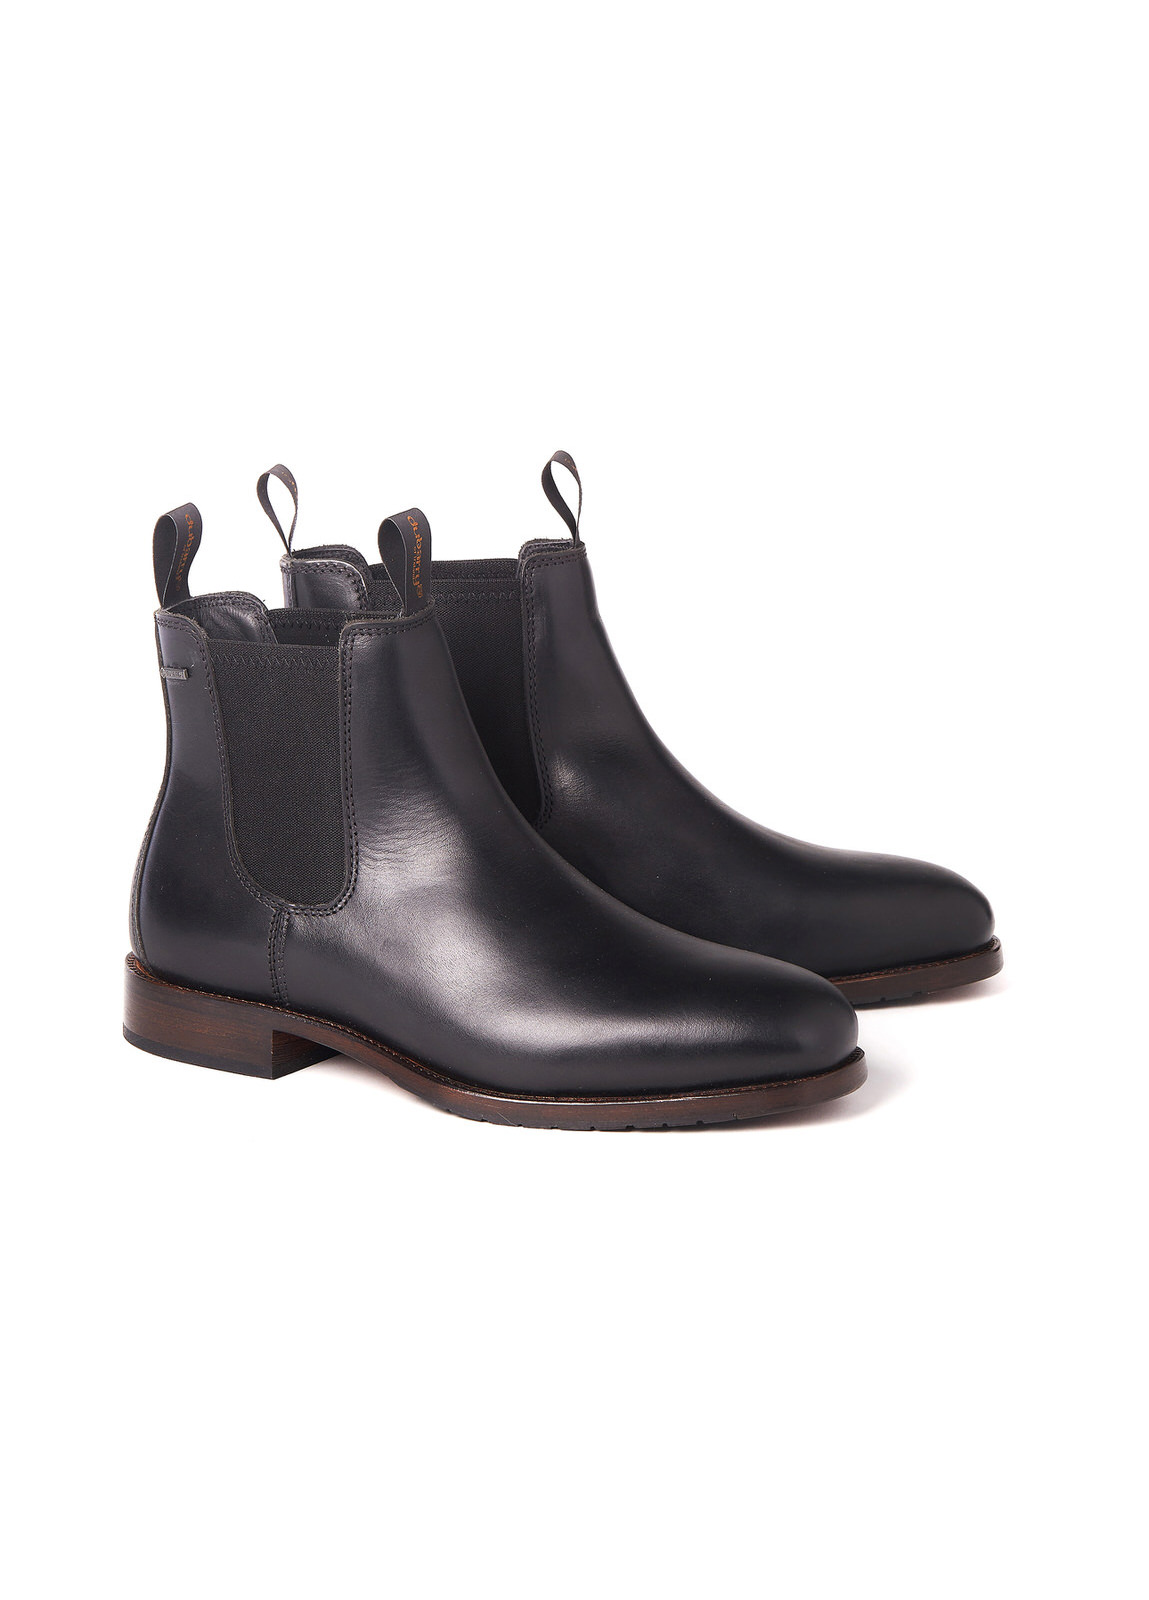 Kerry_Leather_Soled_Boot_Black_Image_1